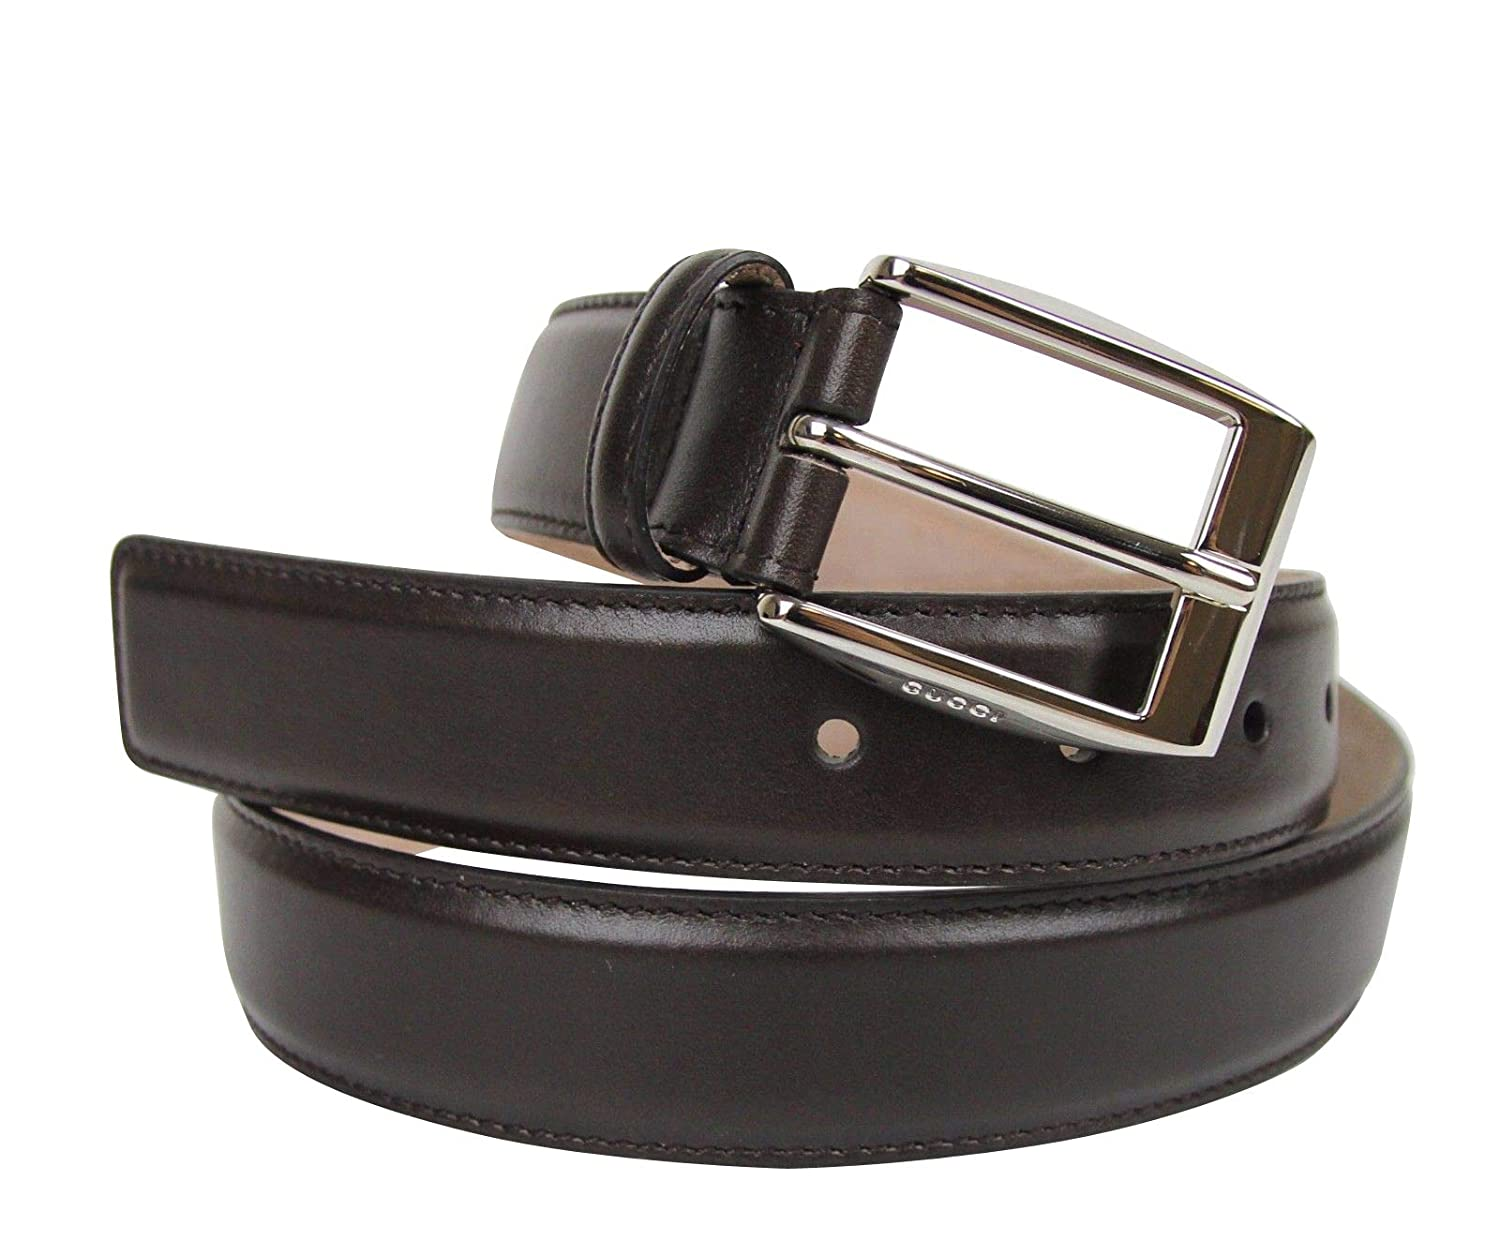 cb5f94cb537 Amazon.com  New Gucci Men s Classic Dark Brown Leather Belt with Square  Buckle 336831 2140  Clothing